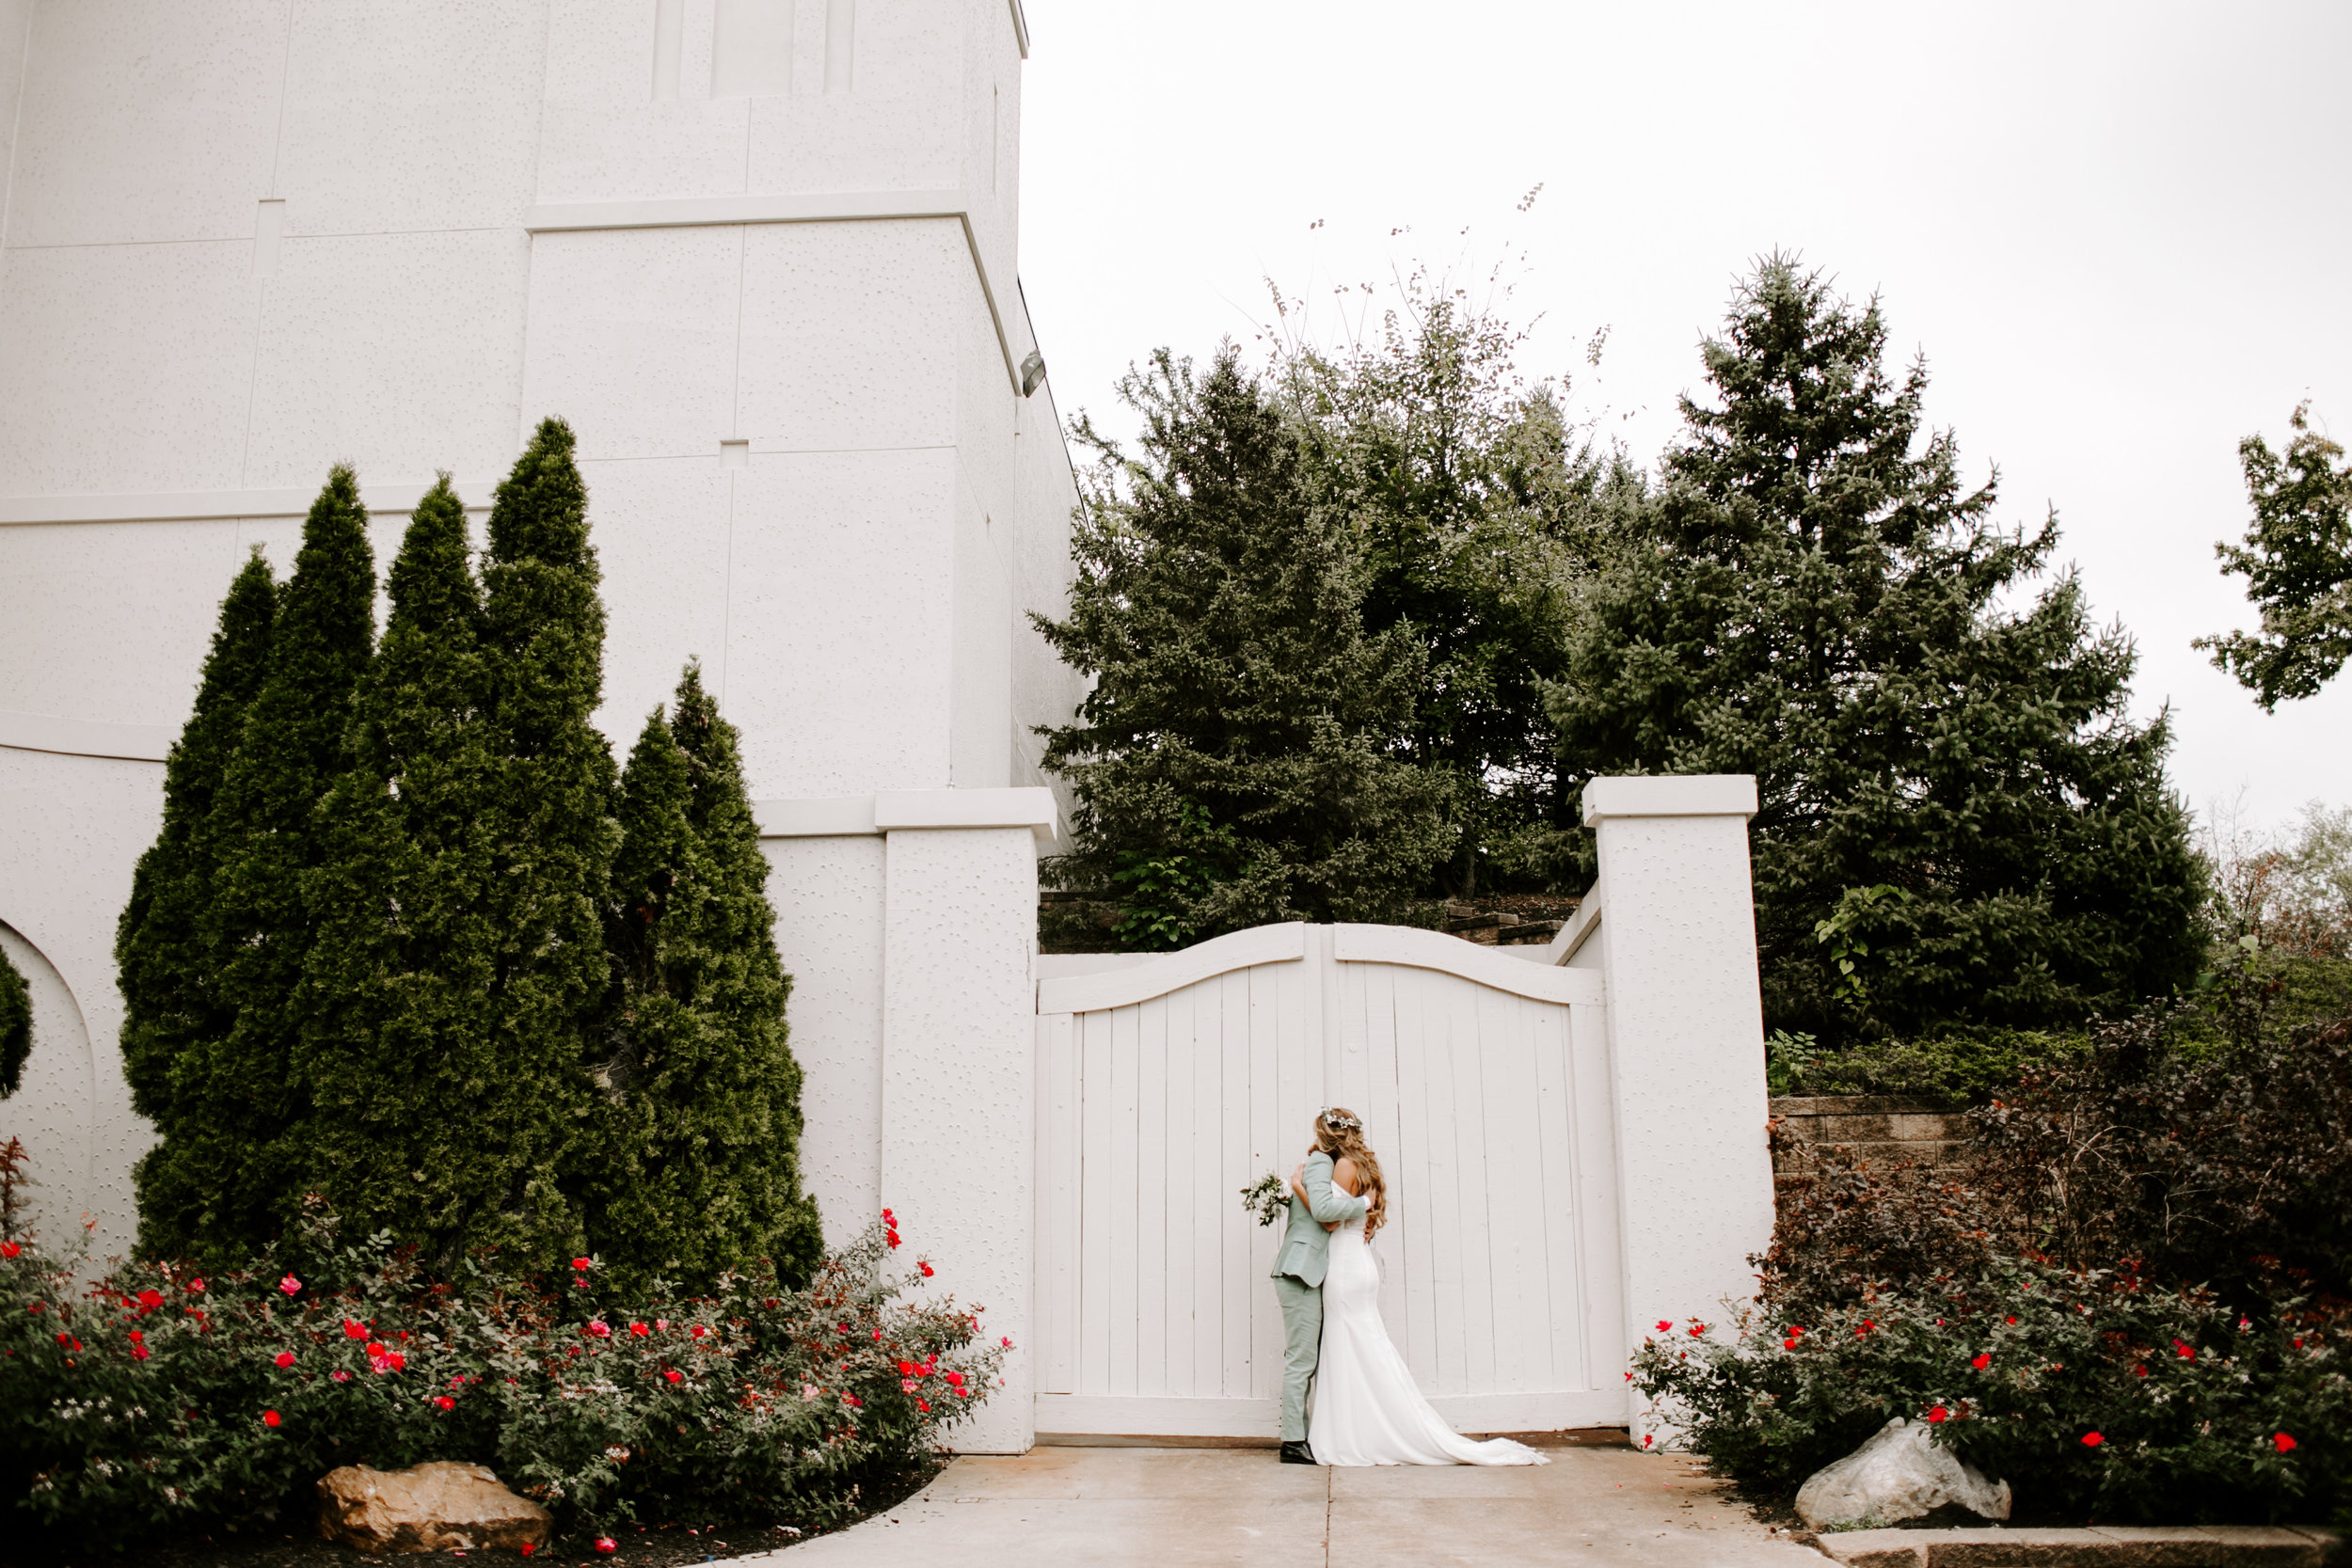 Ashleigh and Jordan Wedding at Hillcrest Country Club in Indianapolis Indiana by Emily Elyse Wehner Photography LLC-718.jpg